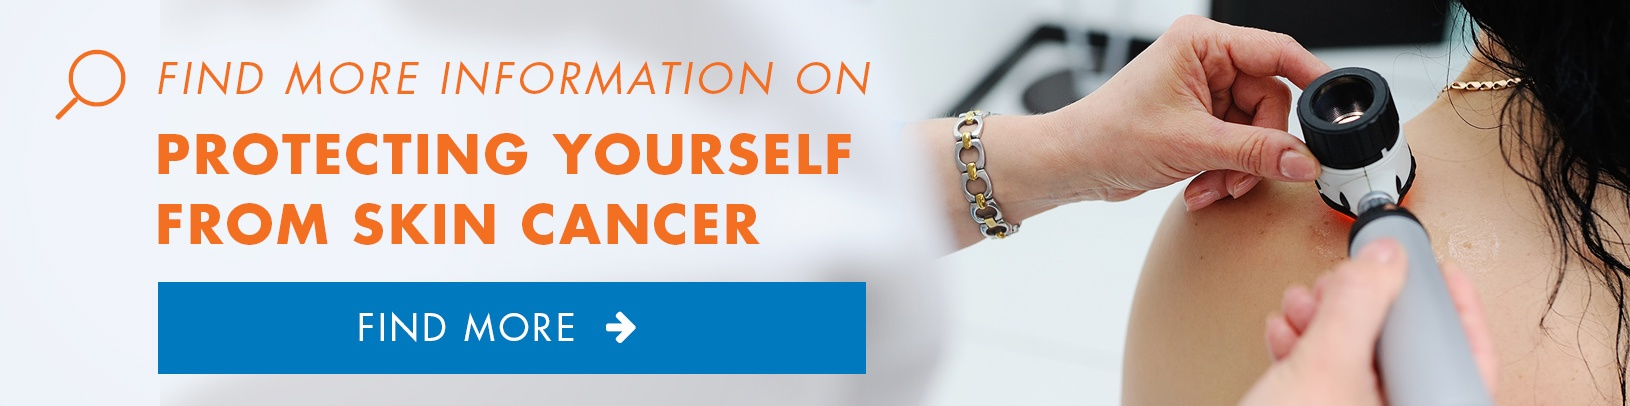 Find More Information on Protecting Yourself From Skin Cancer